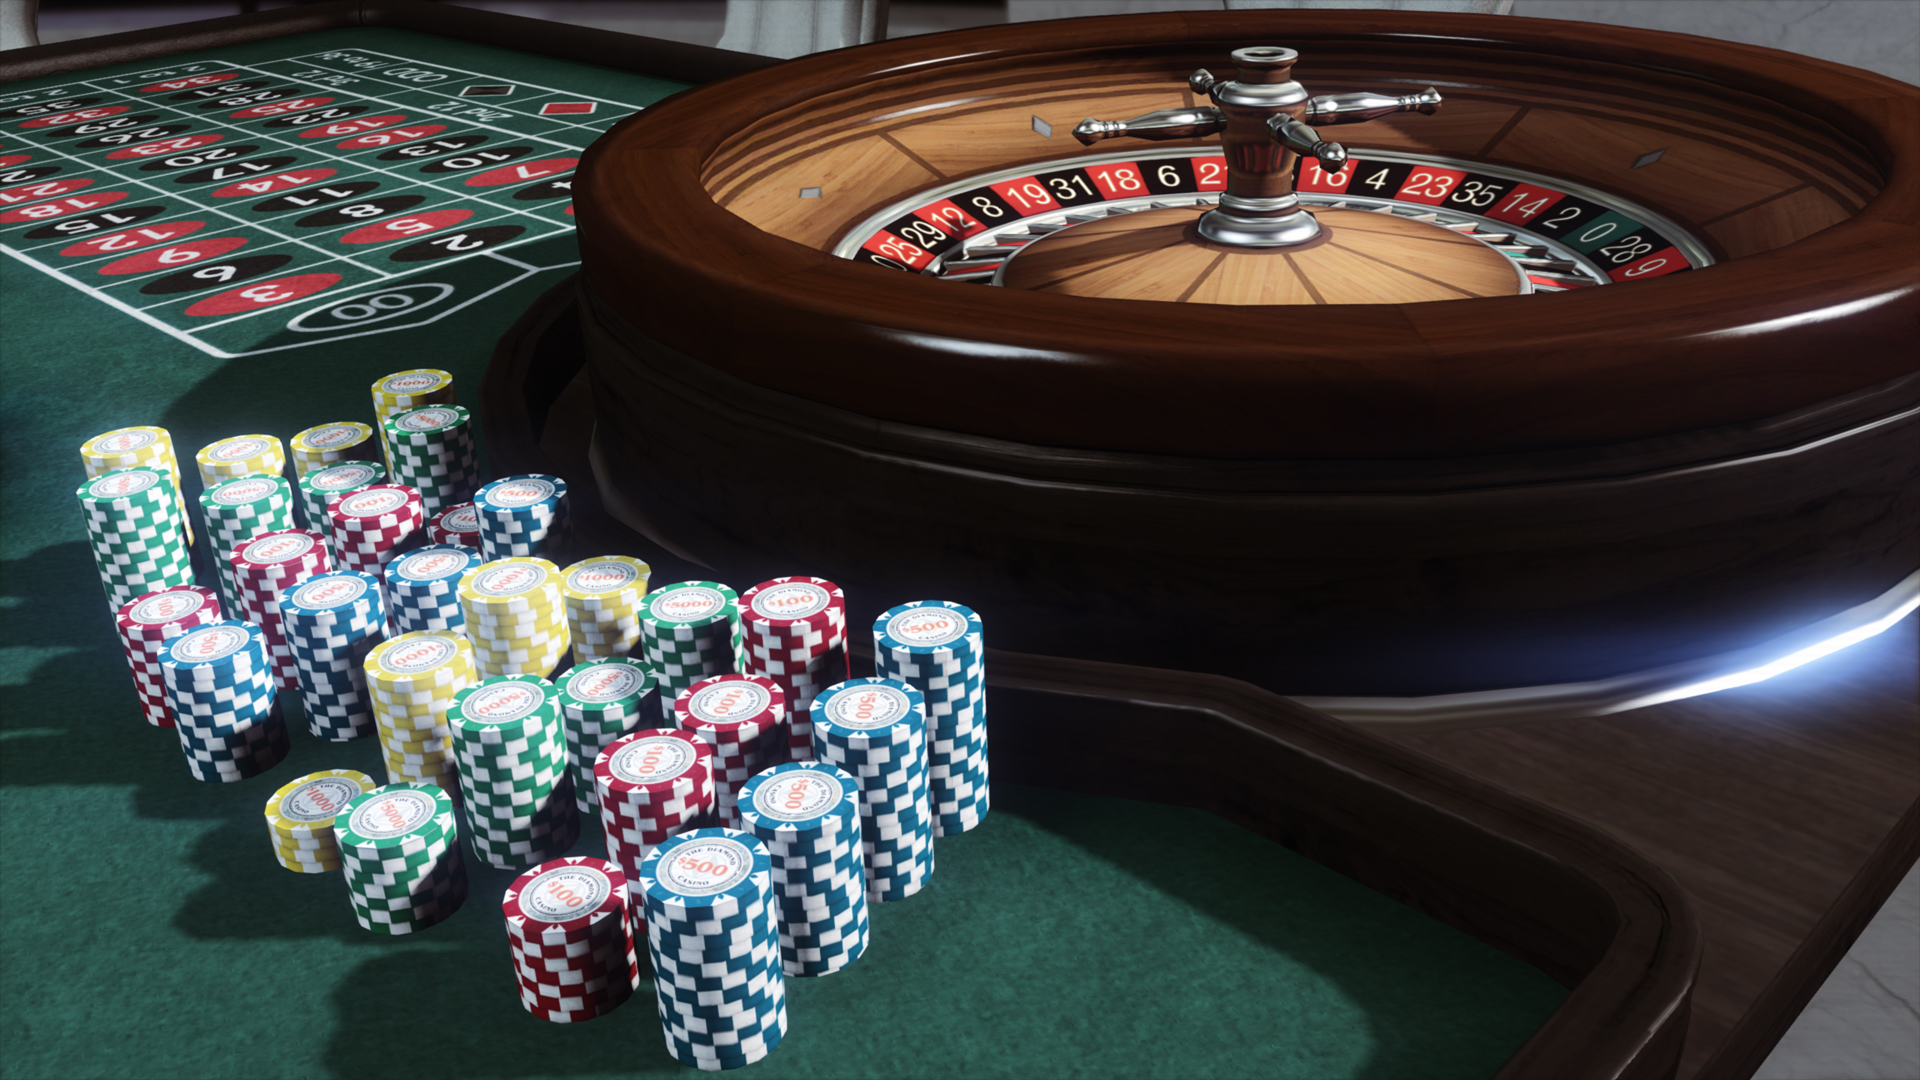 What are poker game skills?